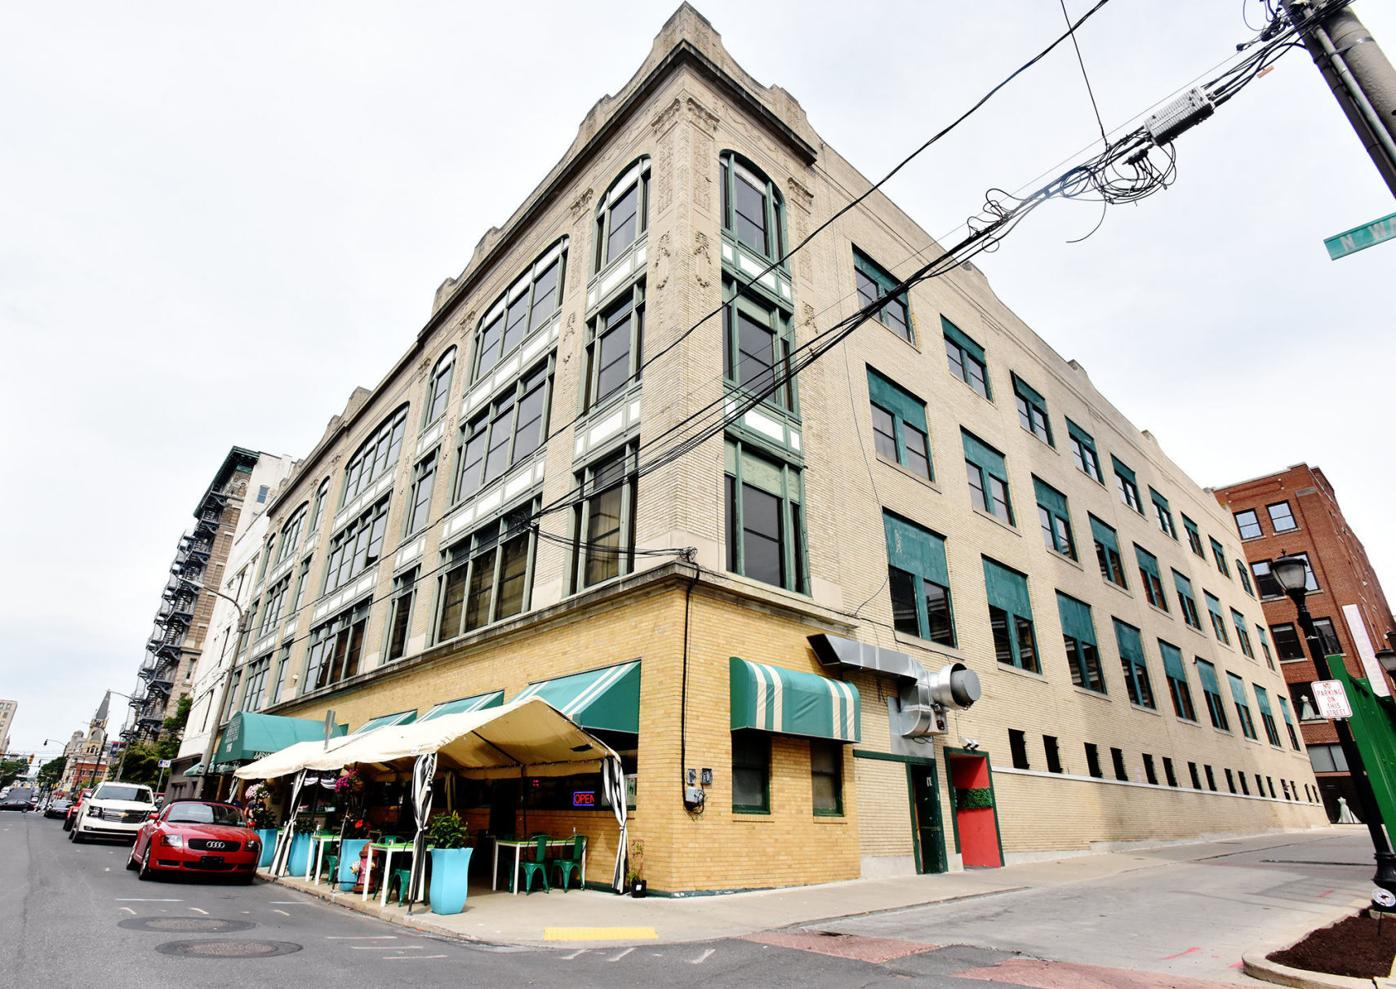 Prolific developer buys another building in downtown Scranton